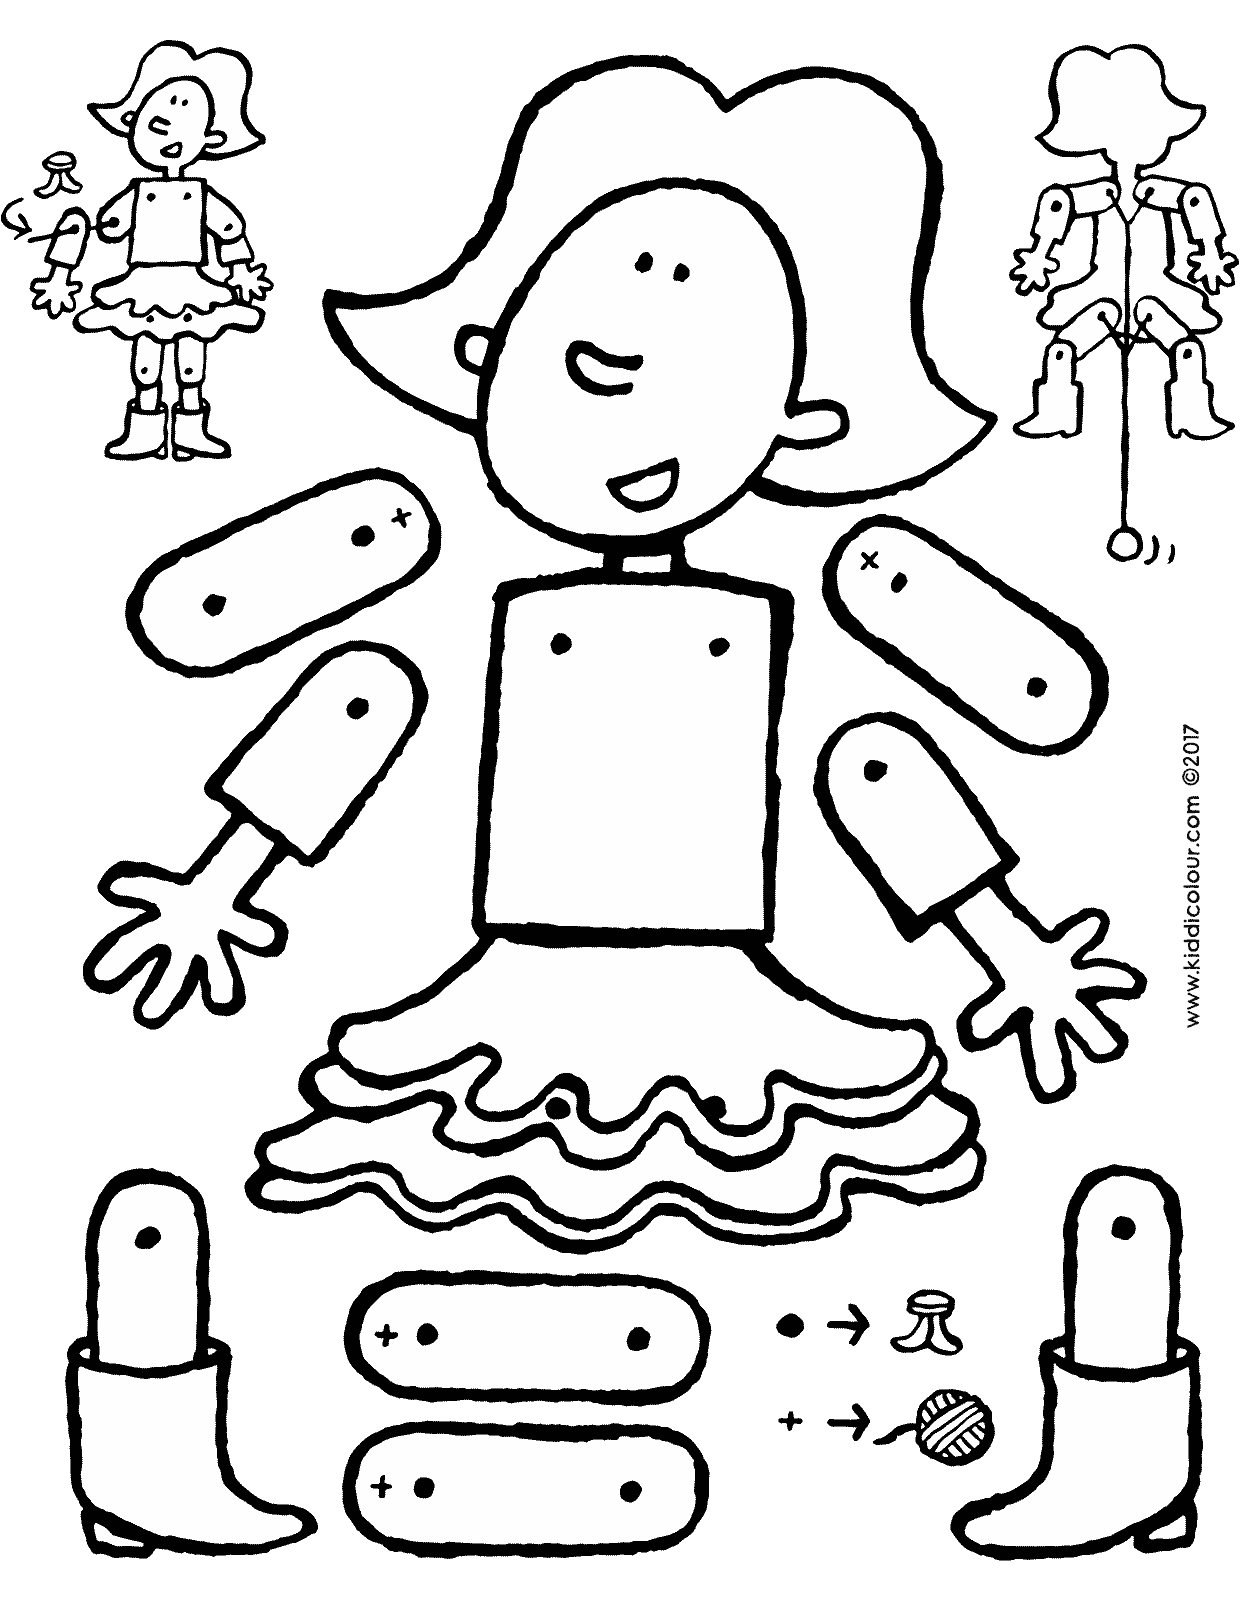 Emma as a jumping jack doll colouring page drawing picture 01V